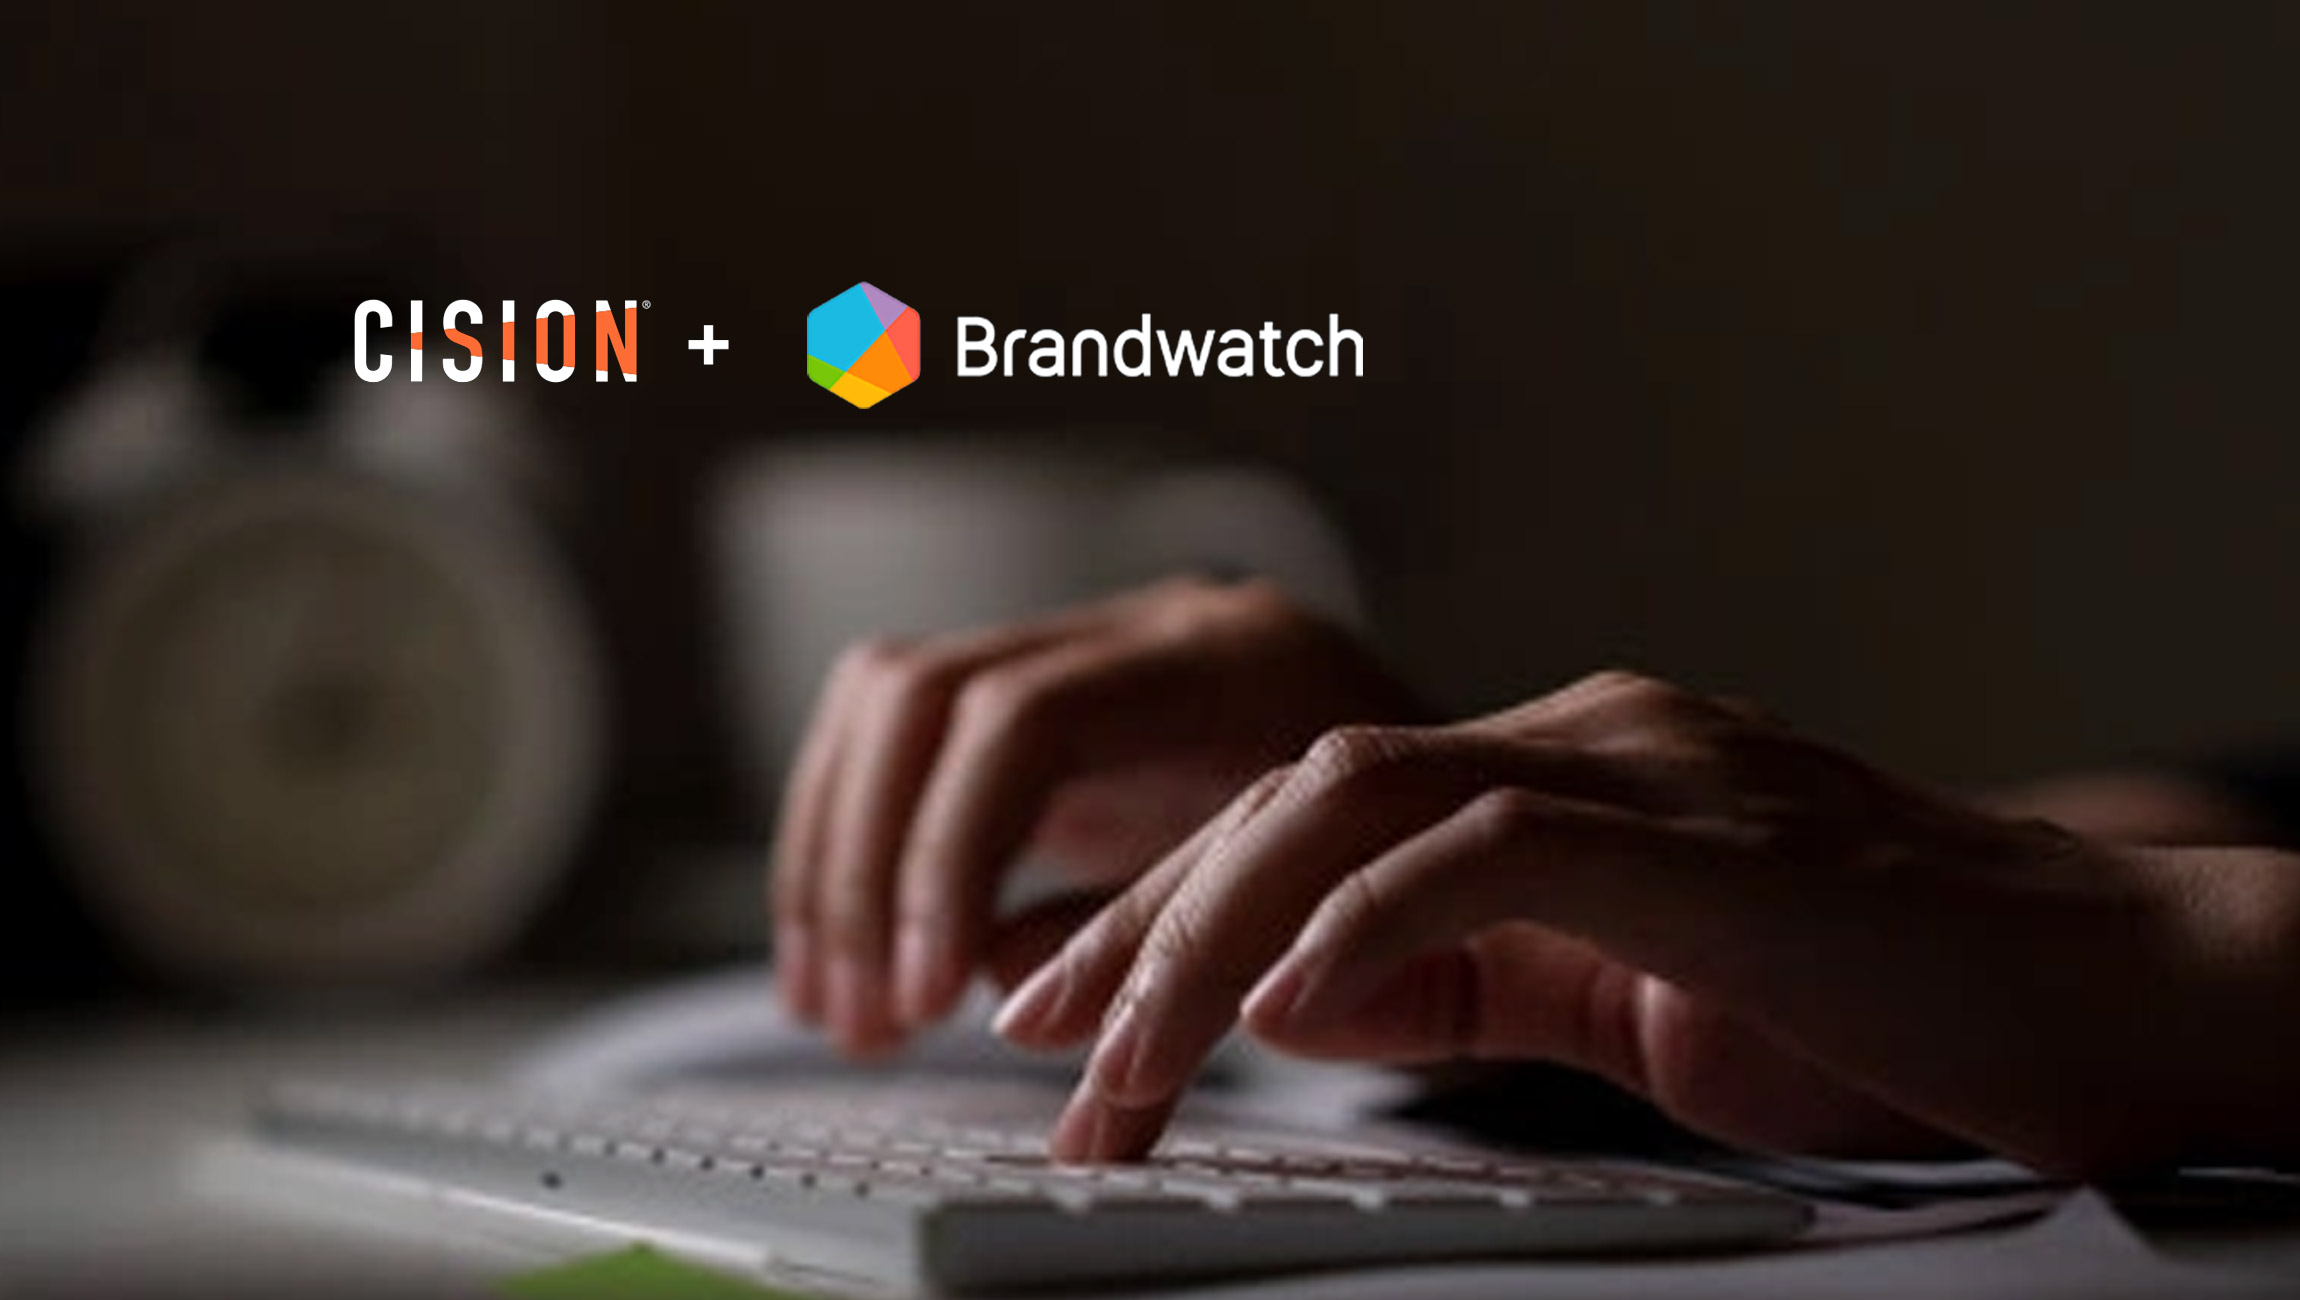 Cision Brings PR, Social Media Management And Digital Consumer Intelligence Together With Category-Defining Acquisition Of Brandwatch